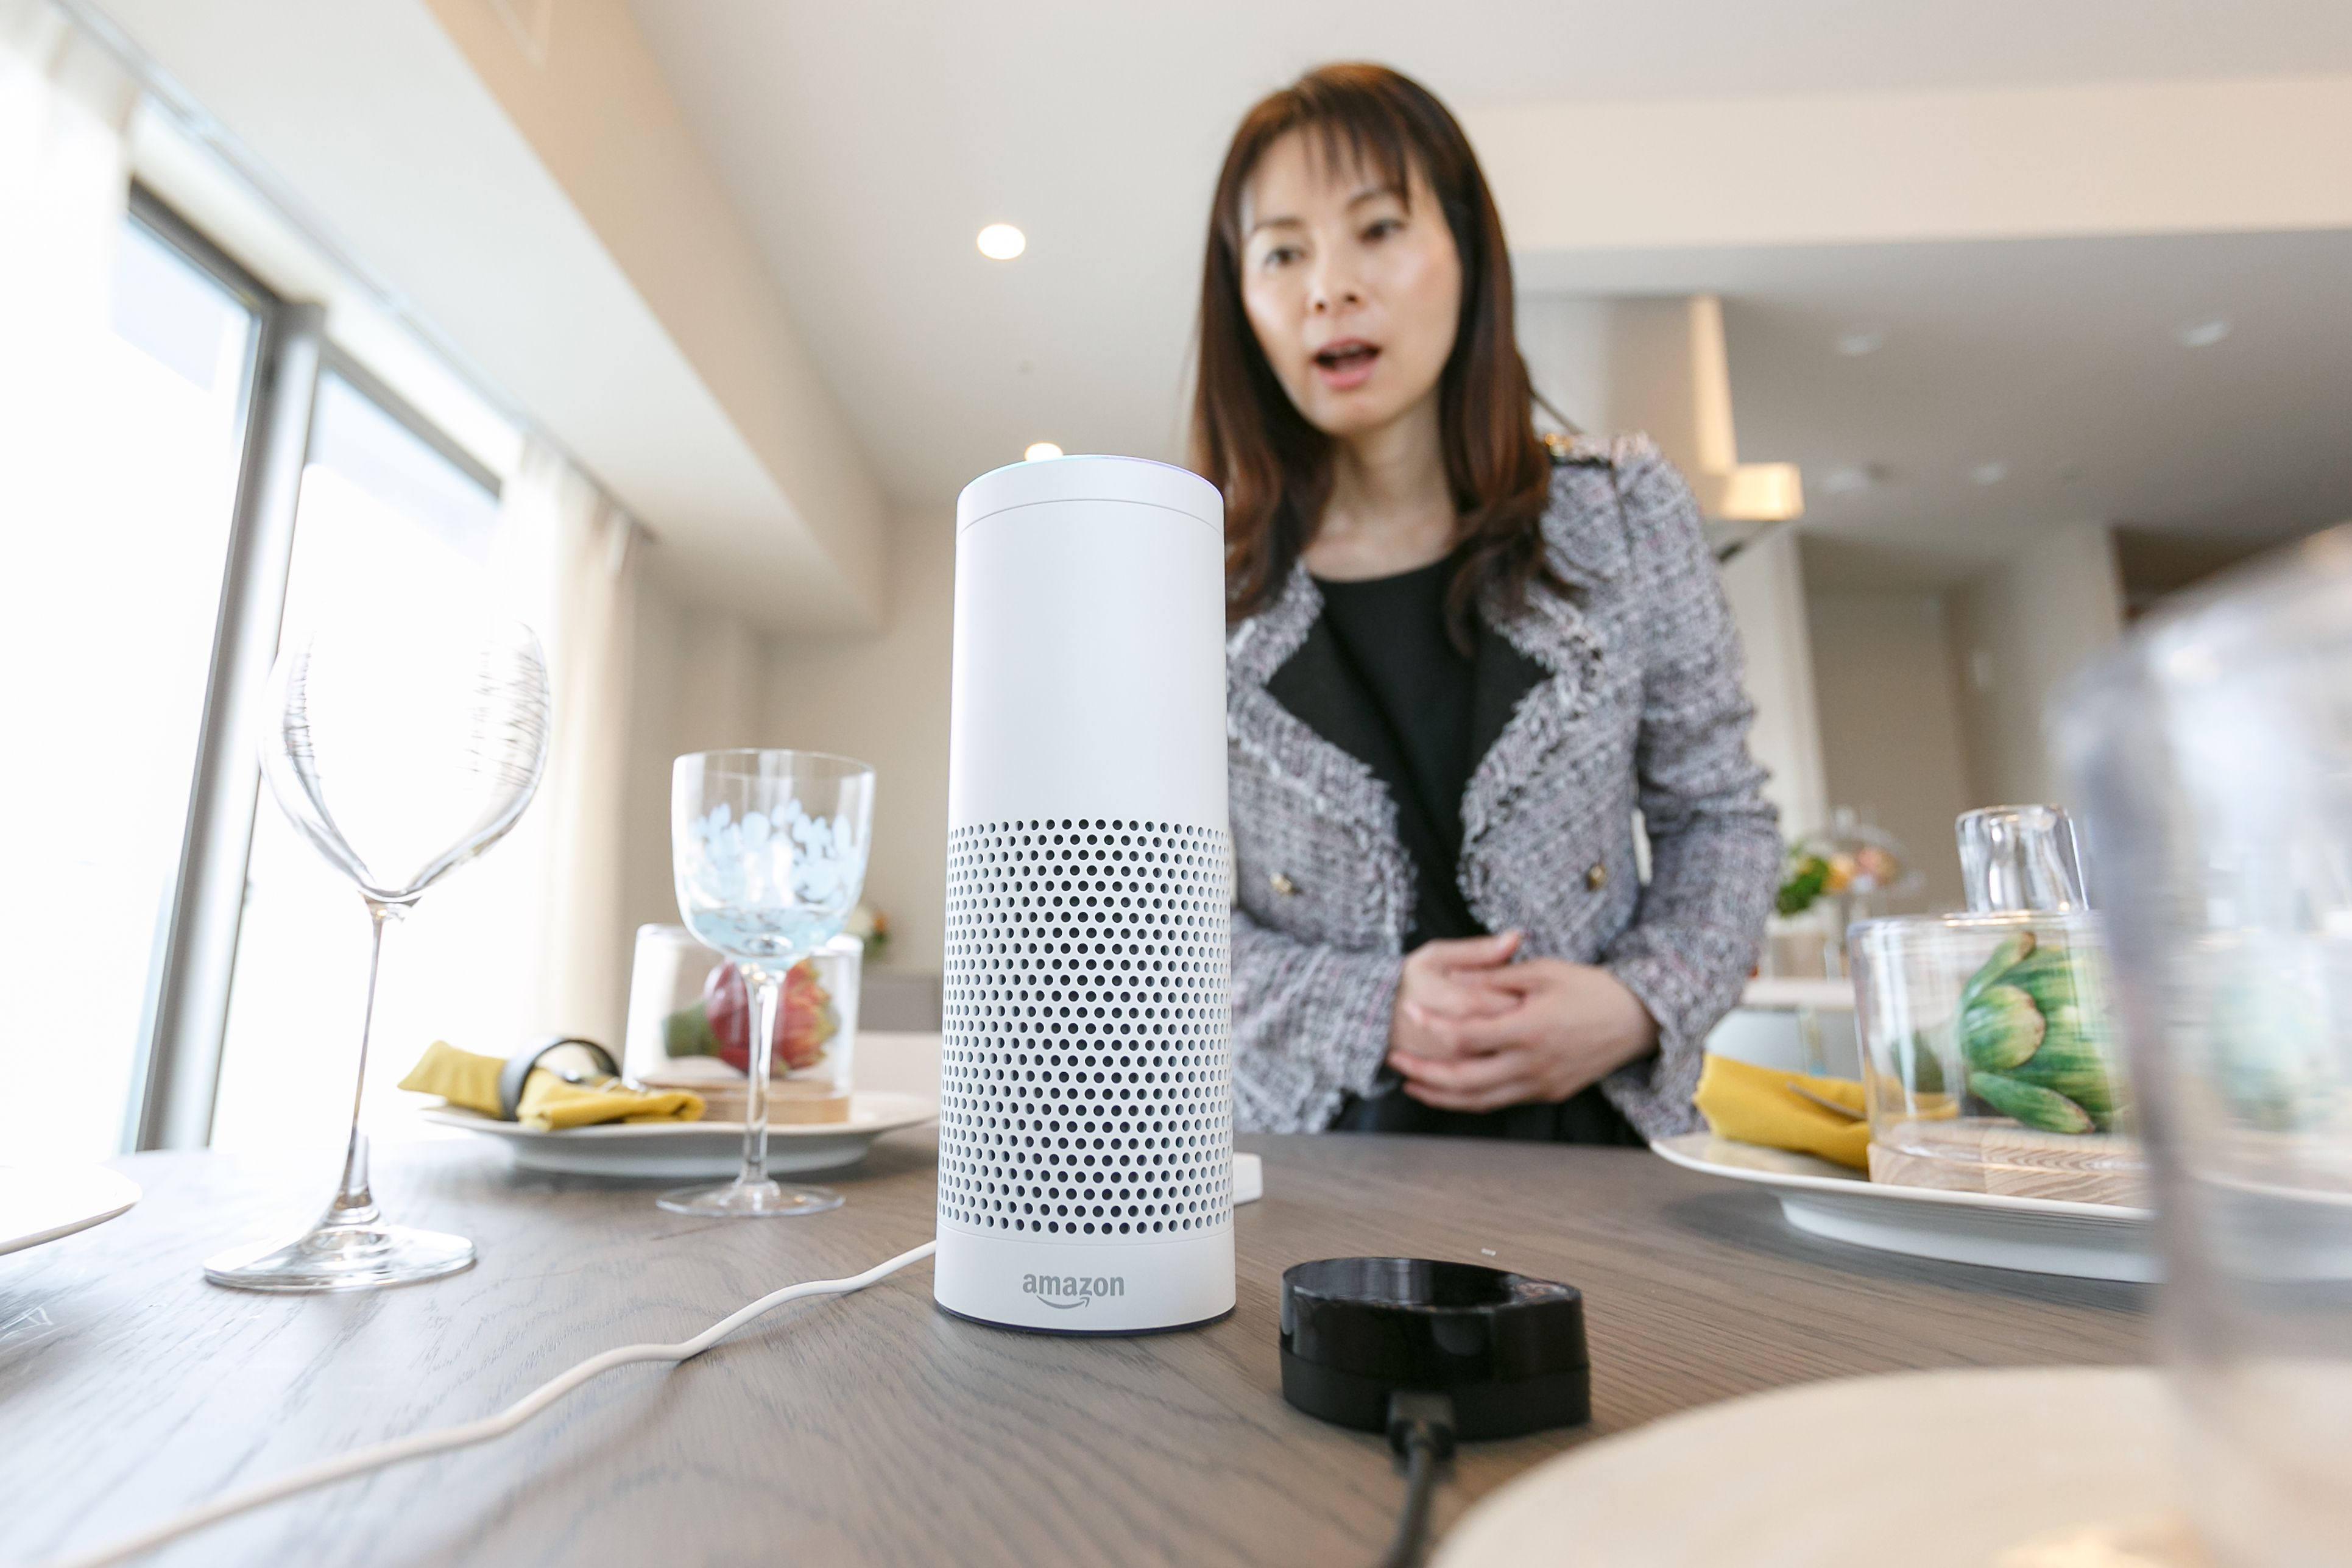 Though consumers mostly use Alexa for mundane daily activities, there's plenty of runway ahead to involve voice in commerce activities.